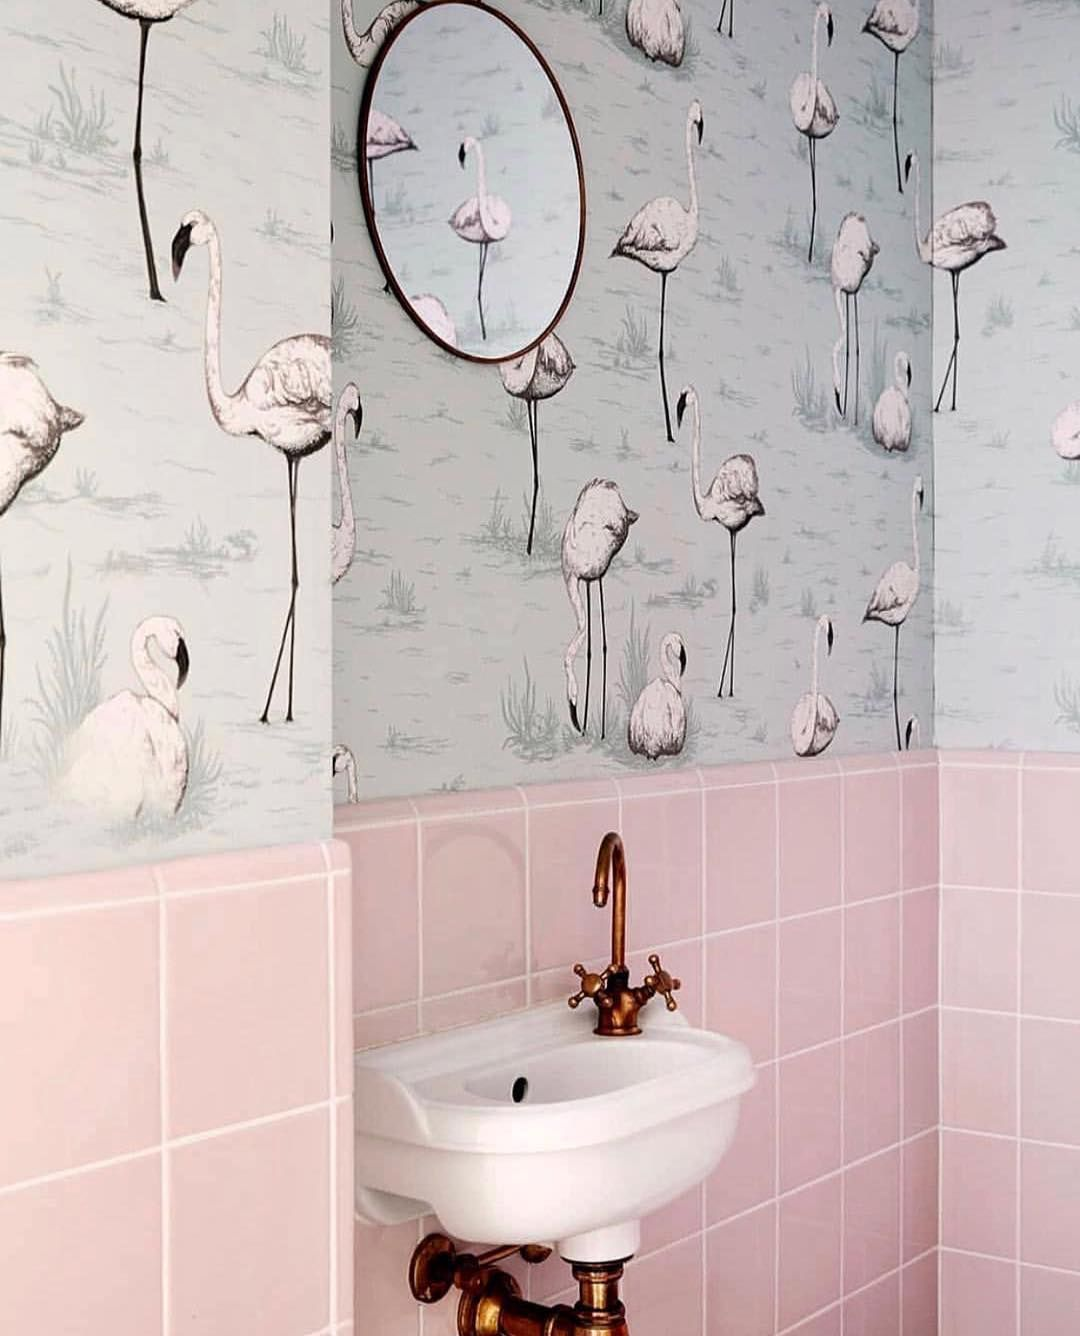 A Cole Son Classic Flamingos 95 8047 S Elegant Birds And Understated Powder Blue Ground Add A Whimsical Touch To A Powder Room Like Badrum